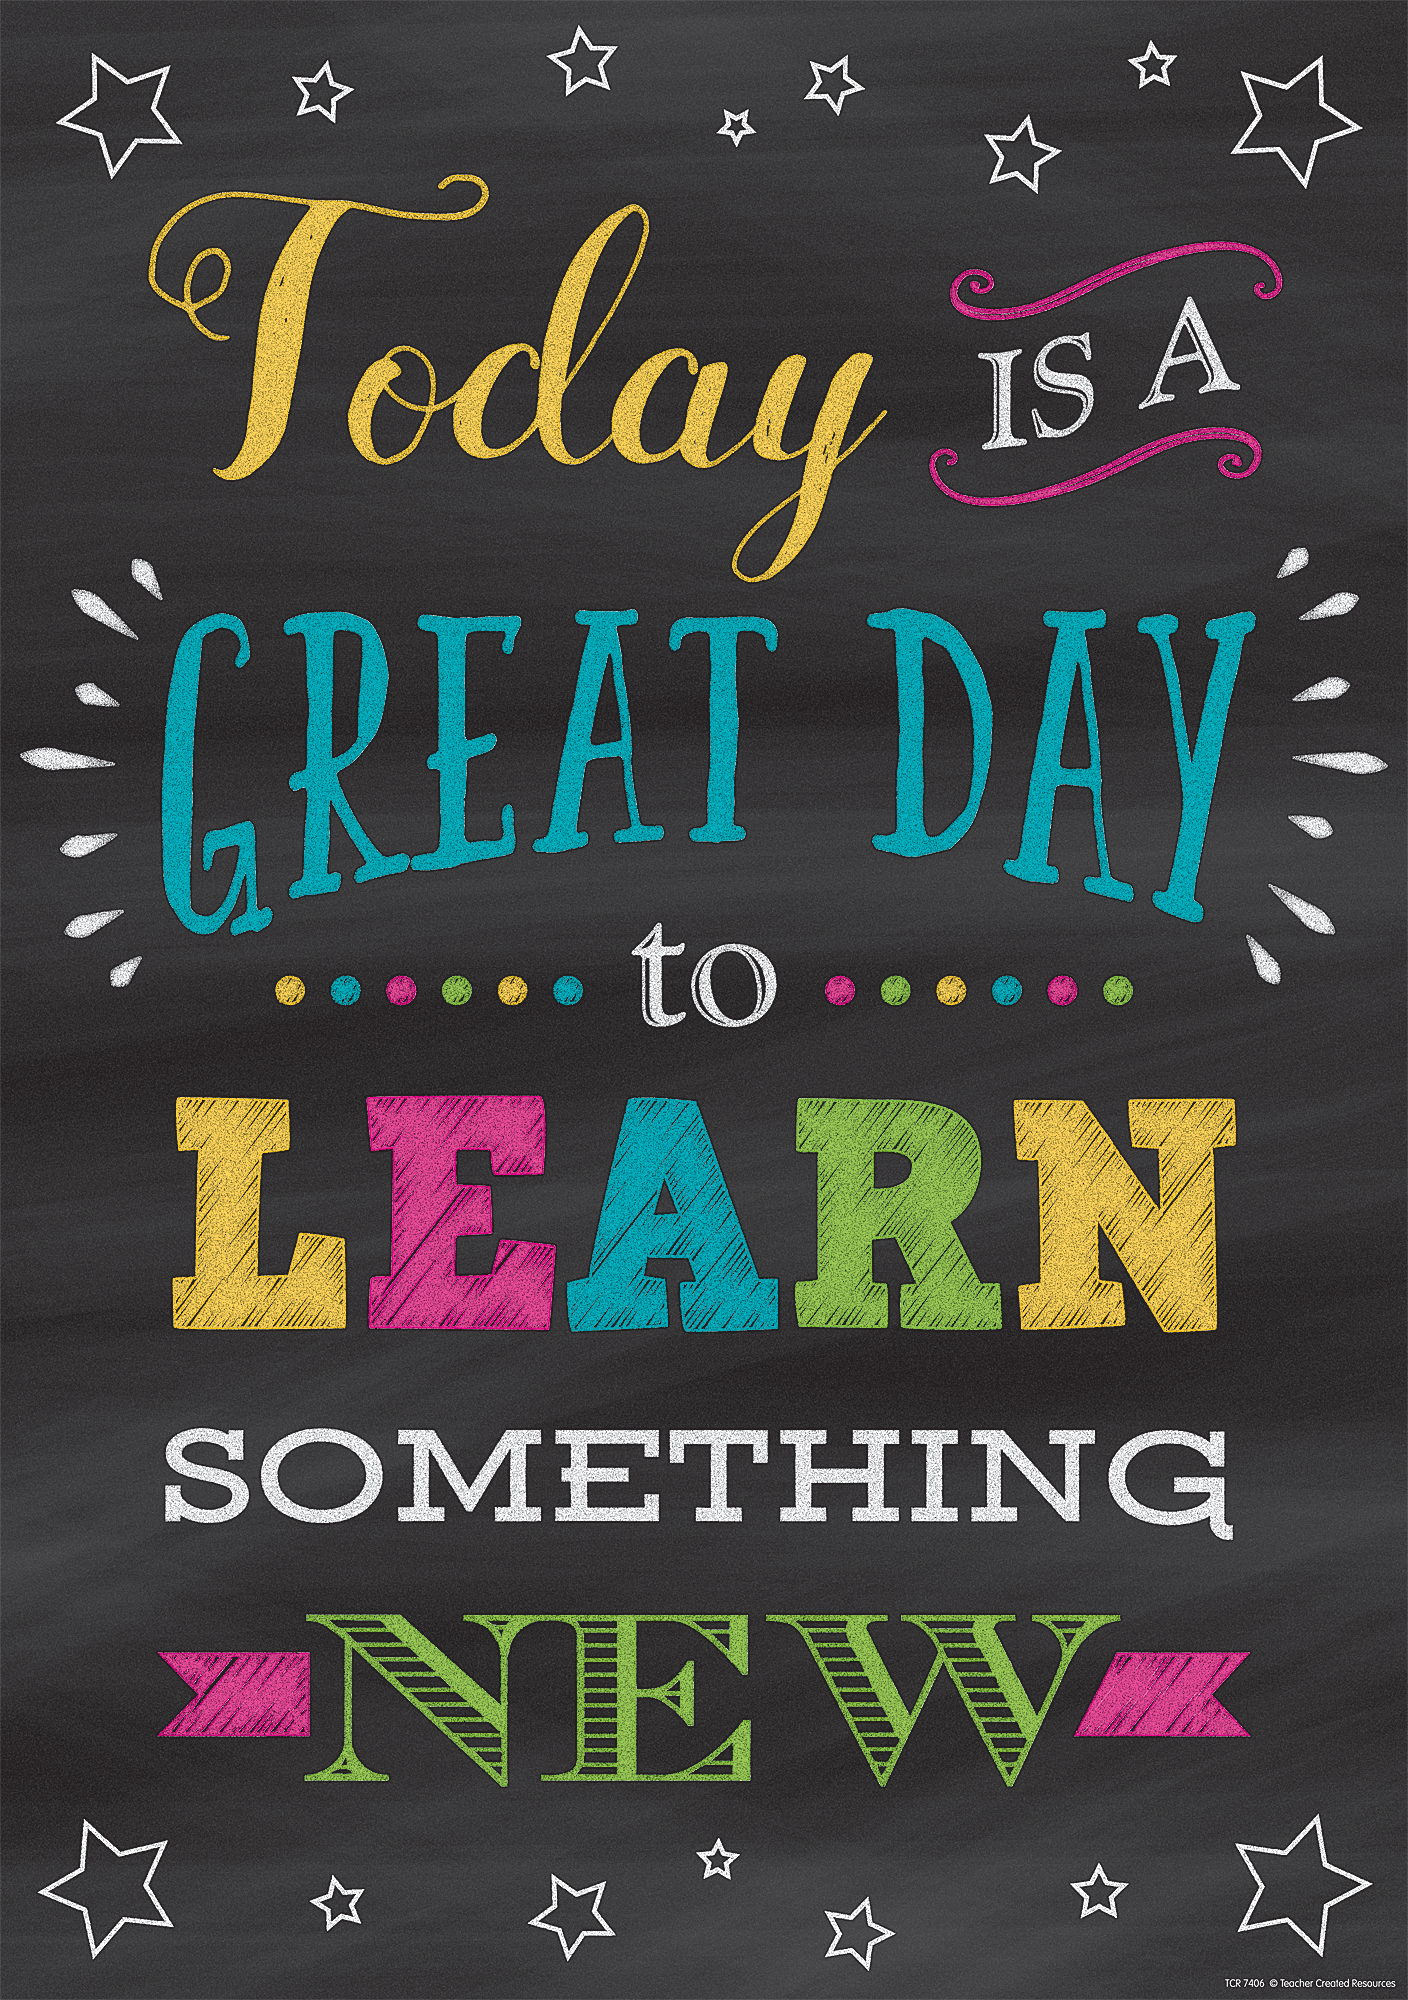 Classroom Setup Ideas ~ Today is a great day to learn something new positive